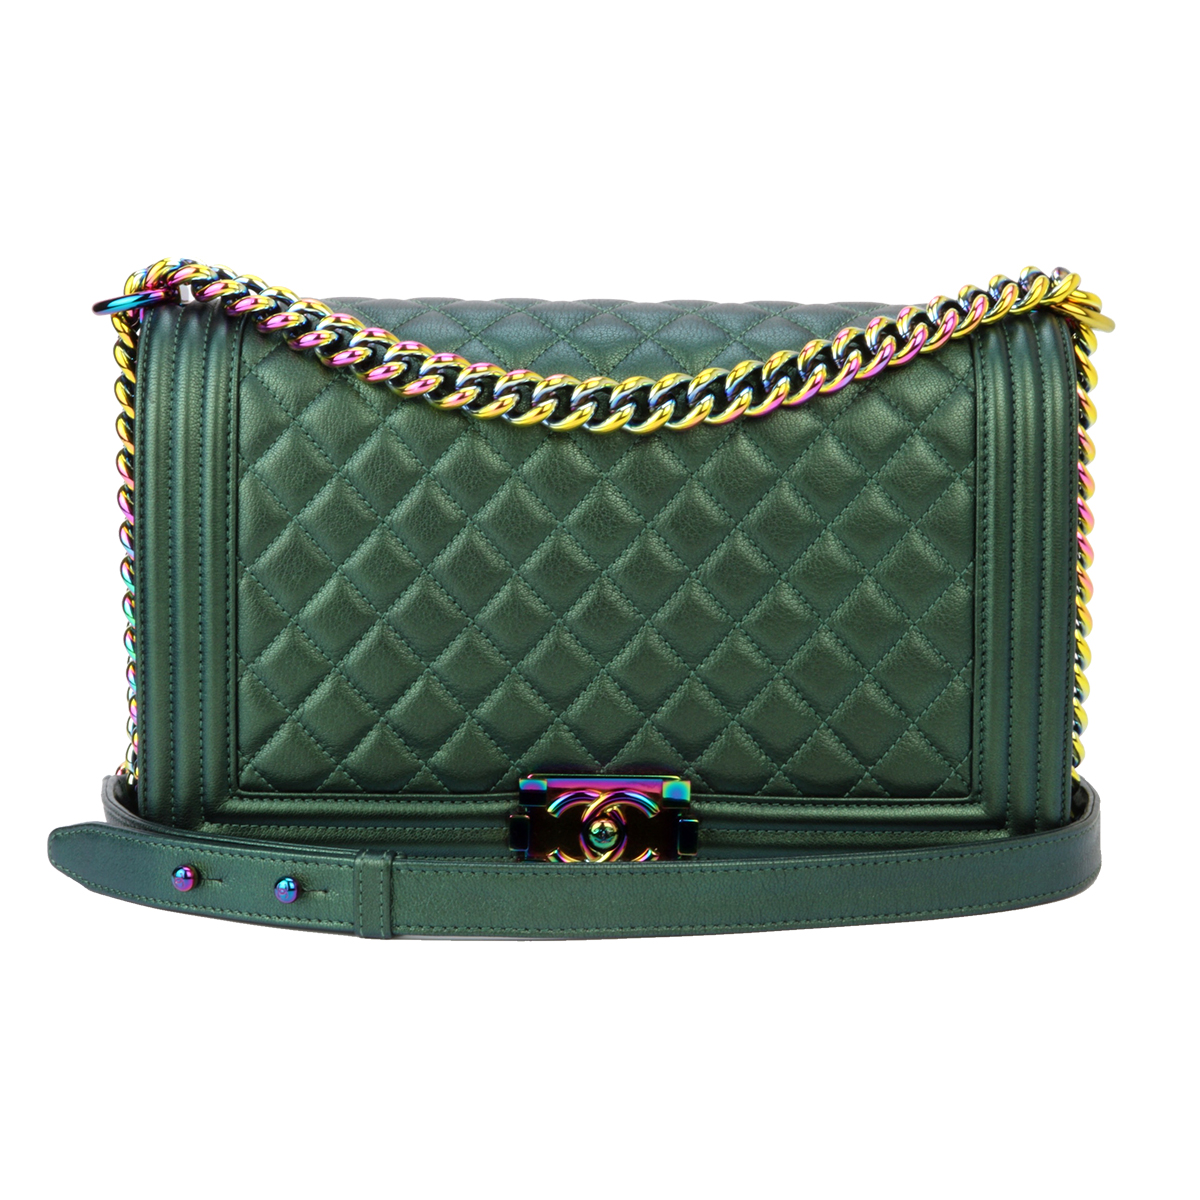 2007a138b1f8 Home/Chanel/CHANEL New Medium Boy Green Iridescent Goatskin Rainbow  Hardware 2016. ; 